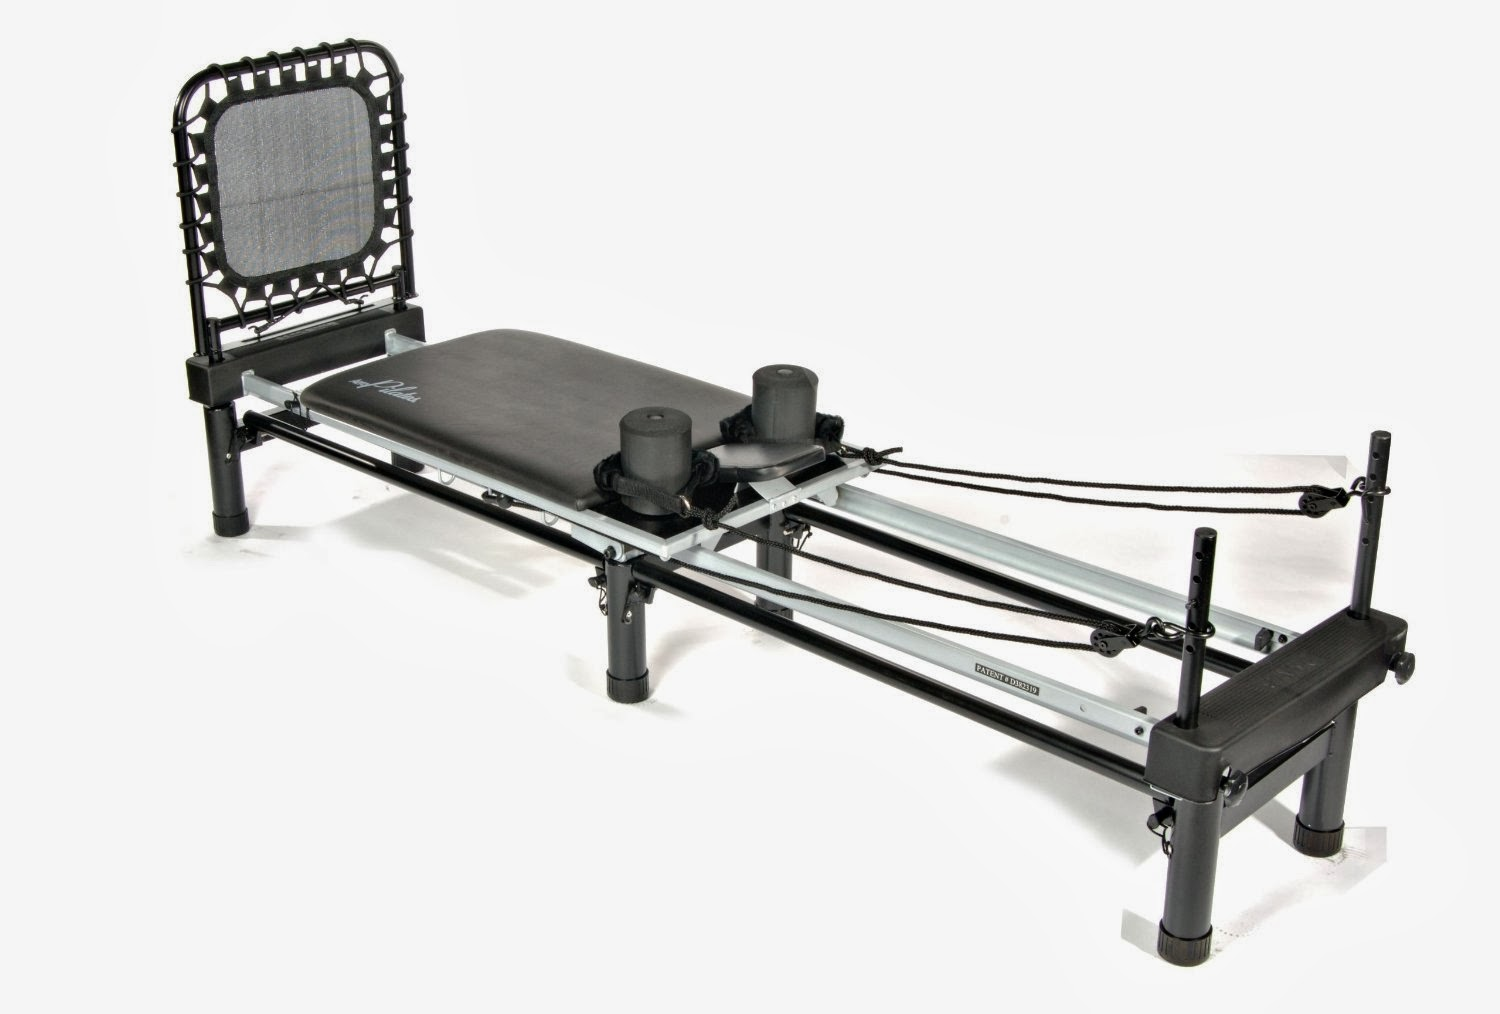 Stamina AeroPilates Reformer with Free Form Cardio Rebounder combines Pilates exercise with cardiovascular workout to help lengthen and strengthen body. Low impact exercise.